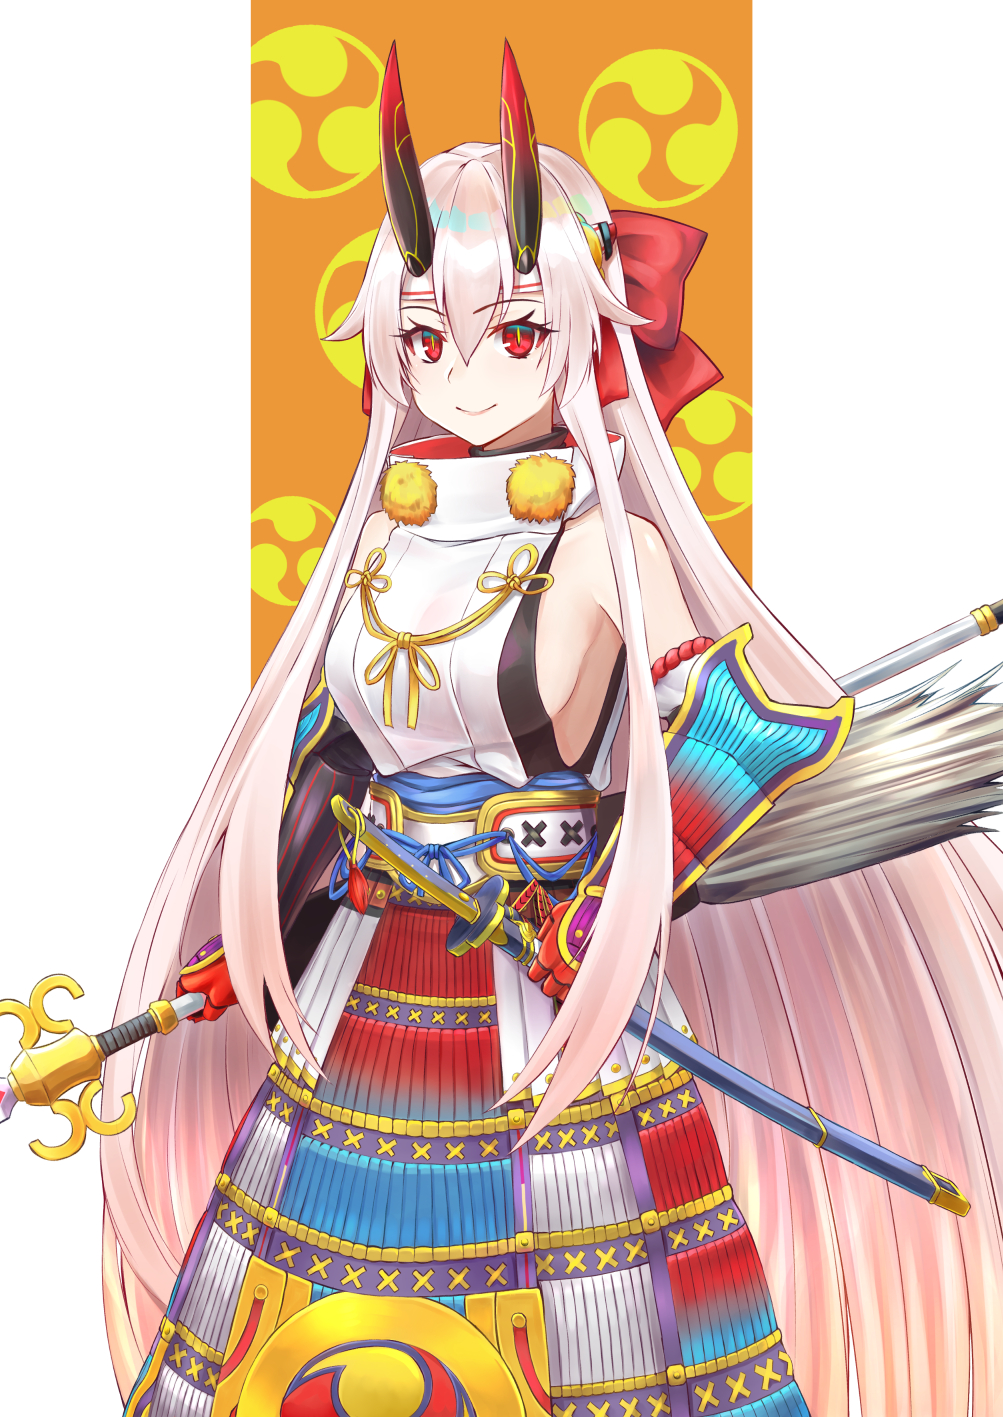 1girl armor bare_shoulders bow breasts detached_sleeves fate/grand_order fate_(series) hair_between_eyes hair_bow headband highres holding holding_polearm holding_sword holding_weapon japanese_armor katana kote kusazuri large_breasts long_hair mitsudomoe_(shape) motsushi oni_horns polearm red_bow red_eyes red_horns scabbard sheath sheathed sideboob silver_hair sleeveless slit_pupils smile solo sword tomoe_(symbol) tomoe_gozen_(fate/grand_order) very_long_hair weapon white_headband